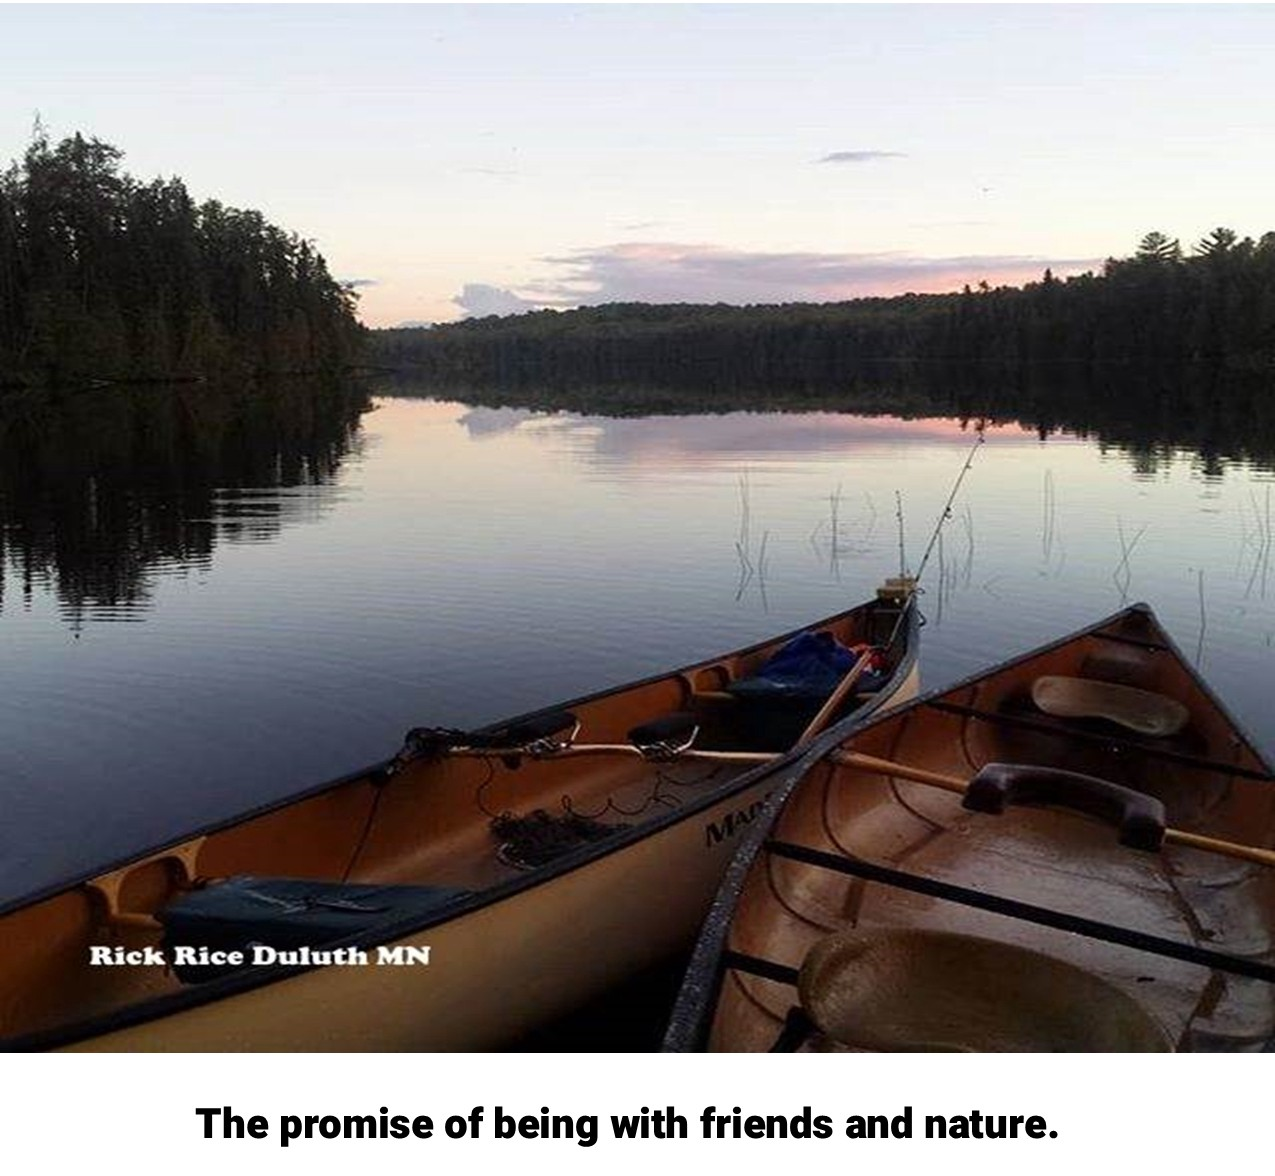 Two Canoes on a glassy water IMAGE by Rick Rice Duluth MN